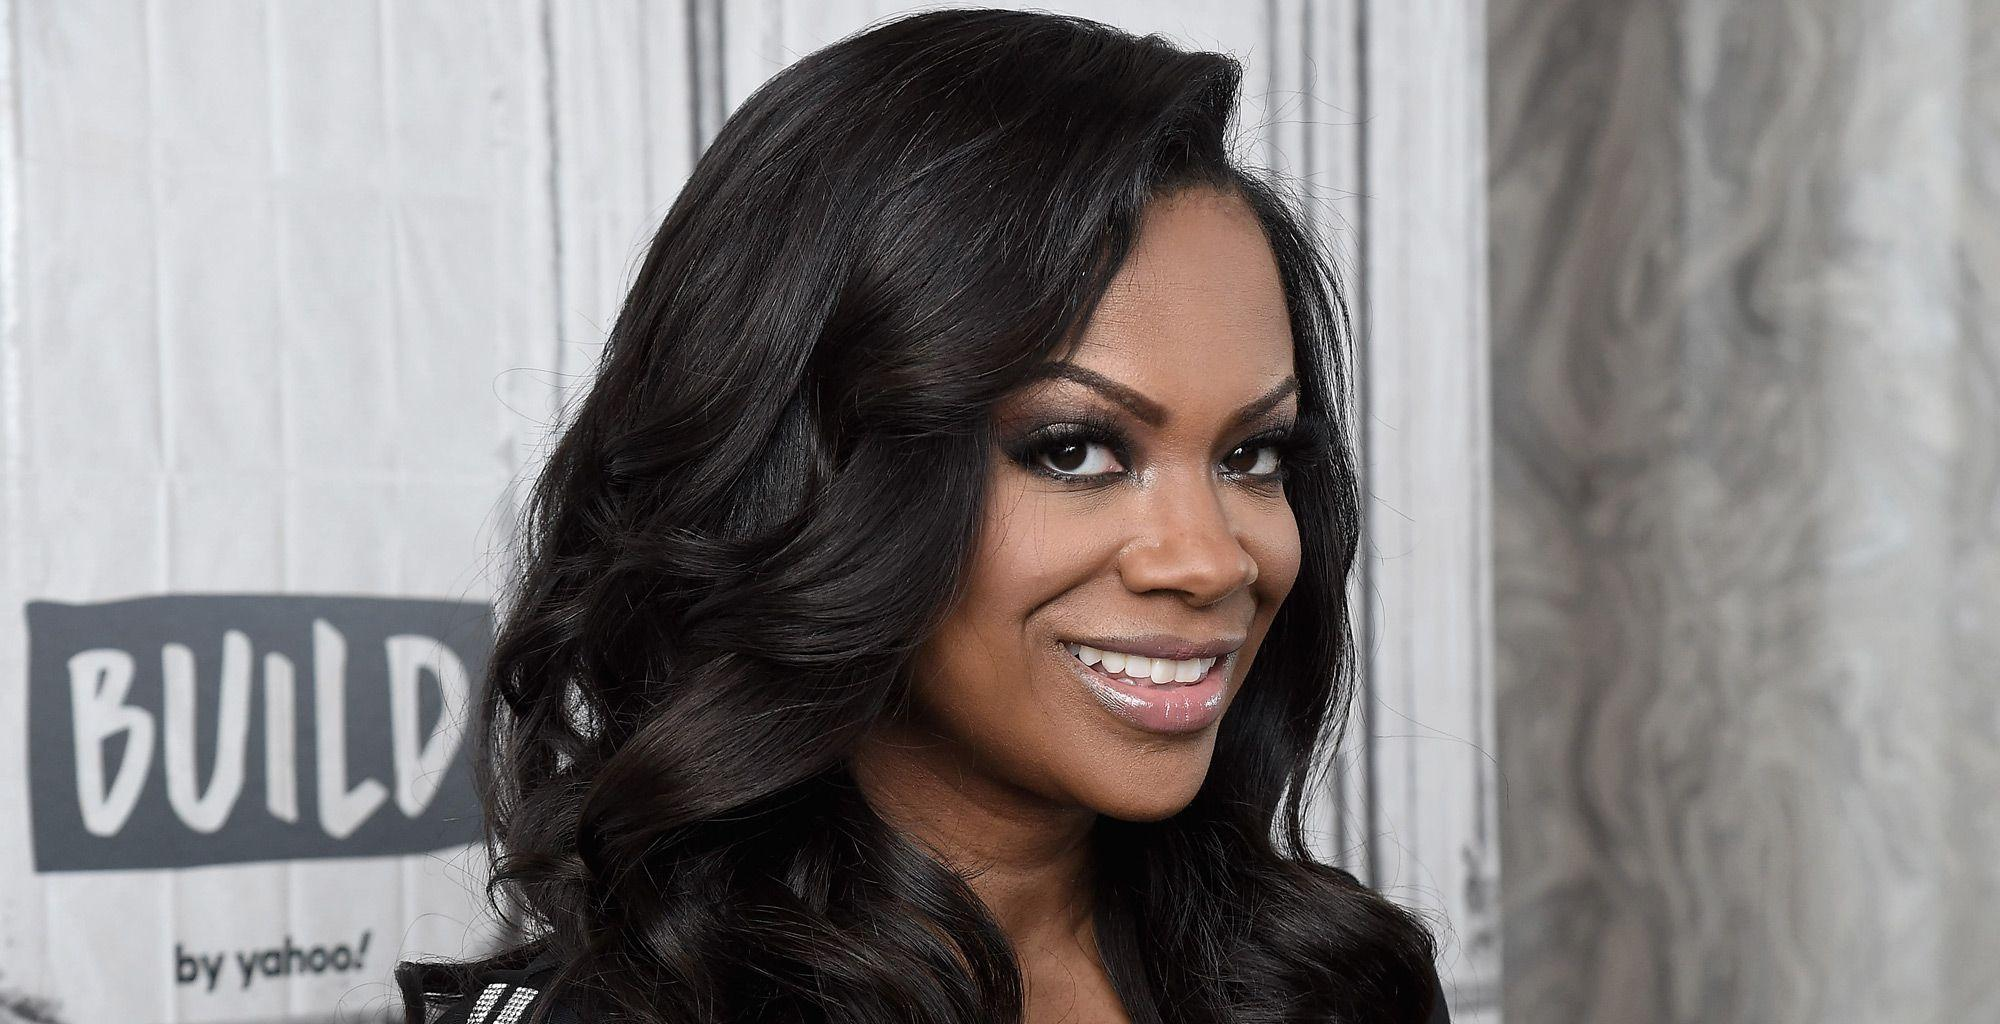 Kandi Burruss Flaunts A Gorgeous Cleavage In This Video - Check It Out Here